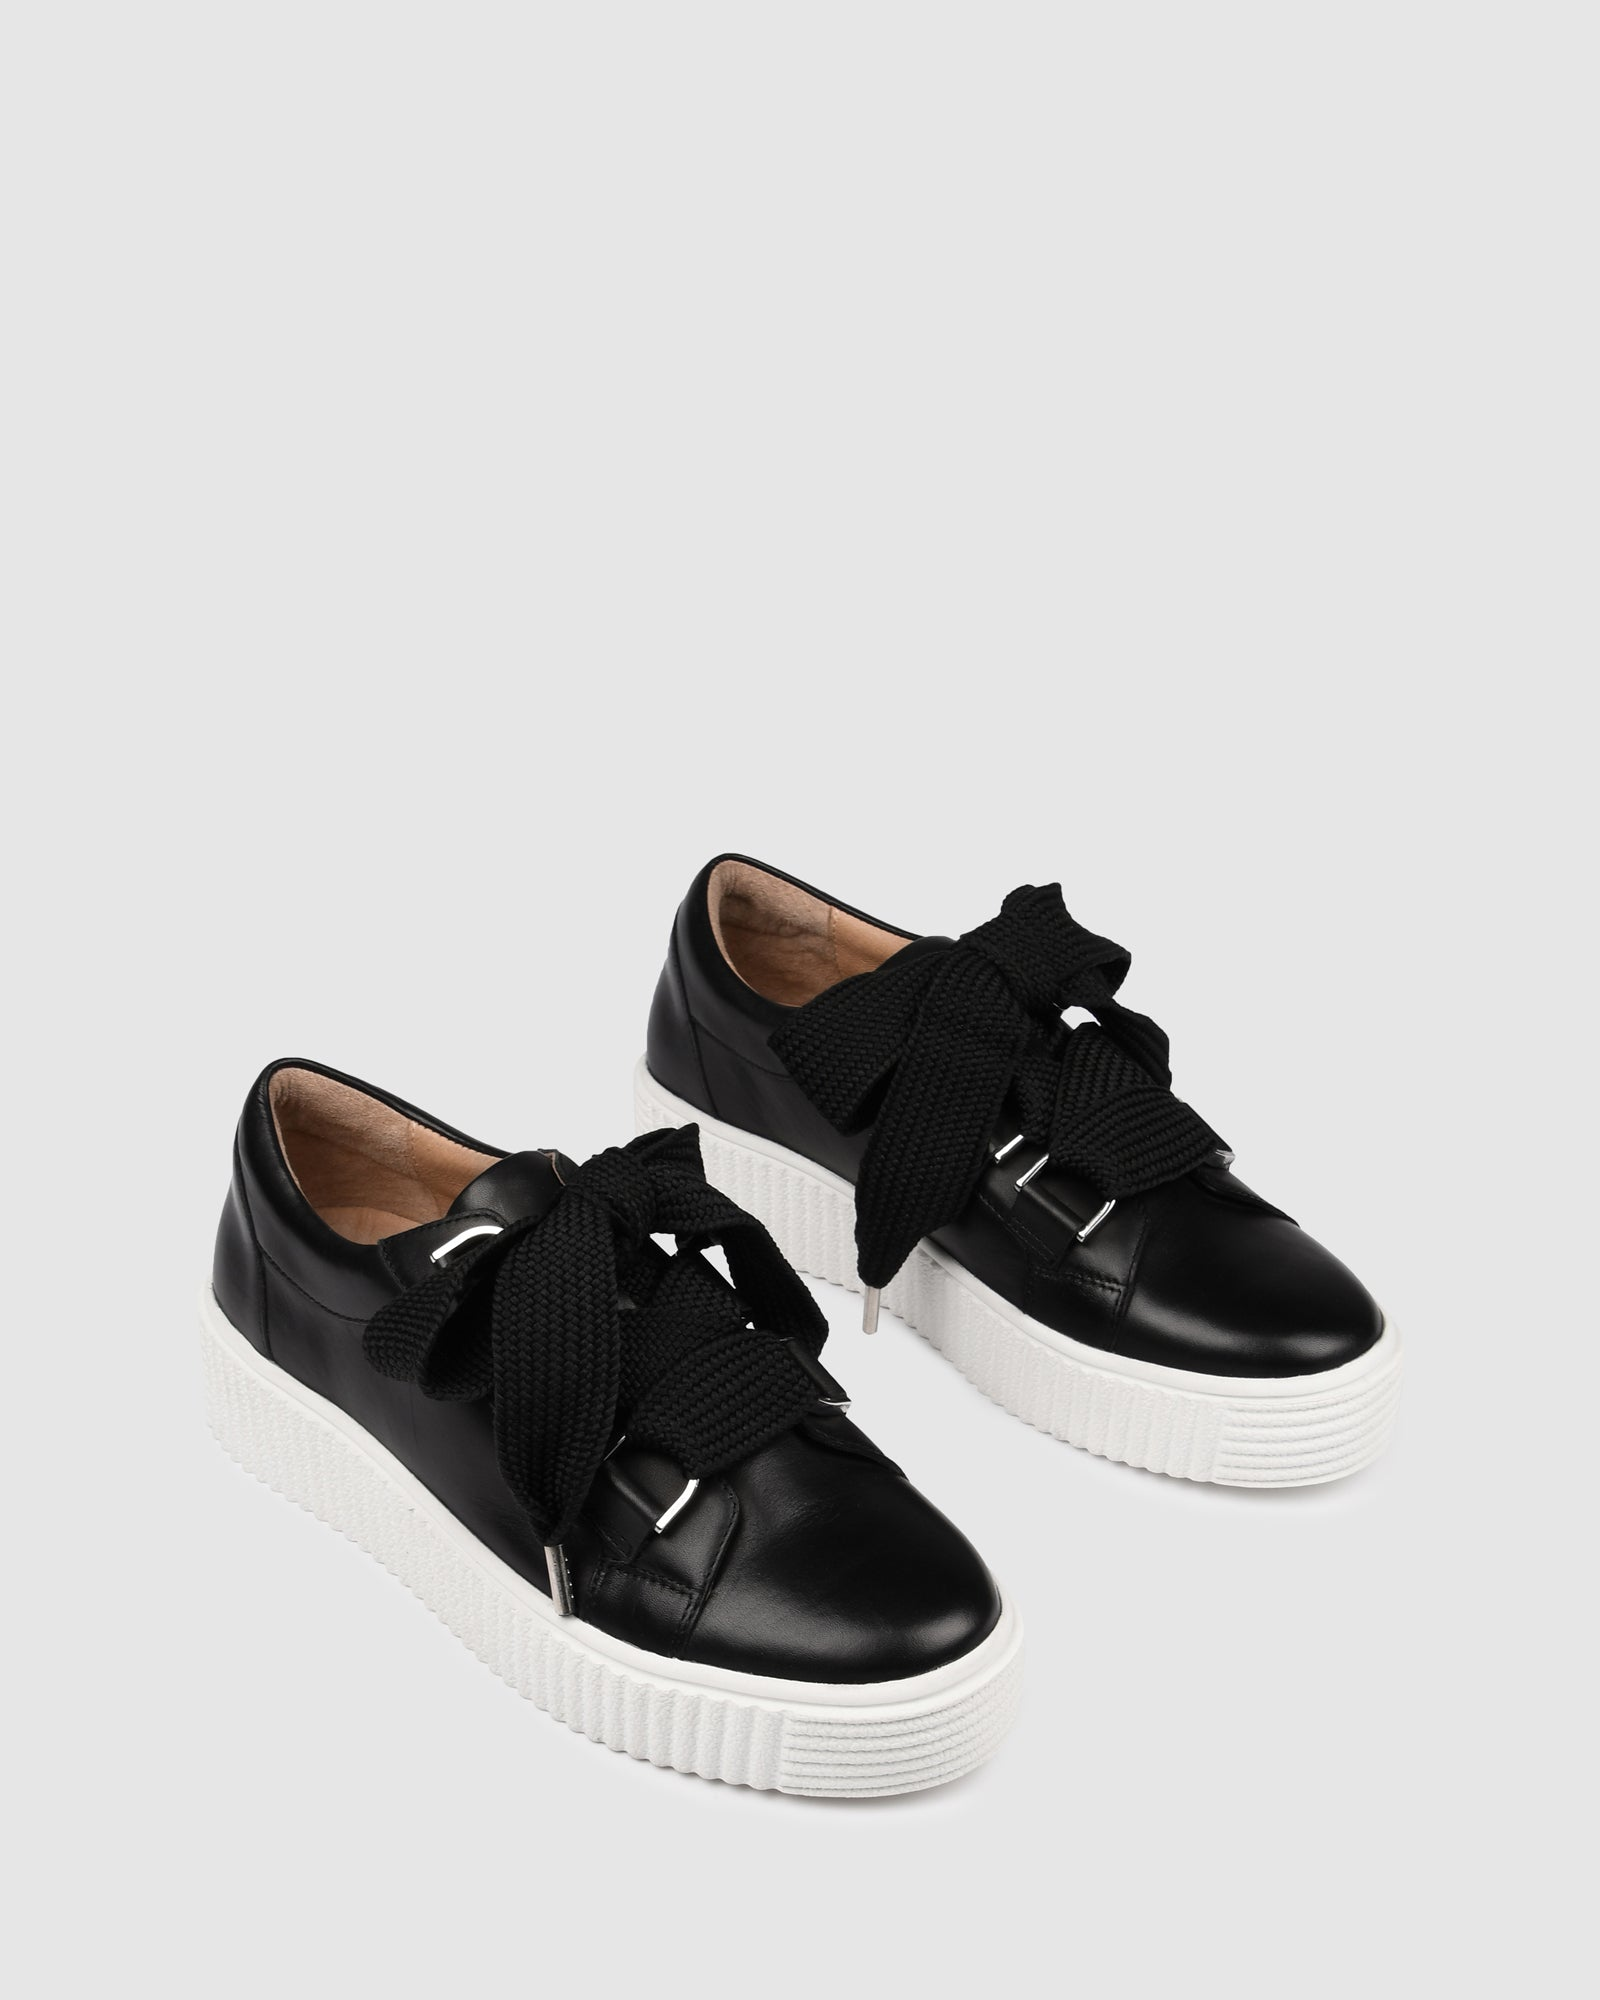 ALASKA SNEAKERS BLACK LEATHER